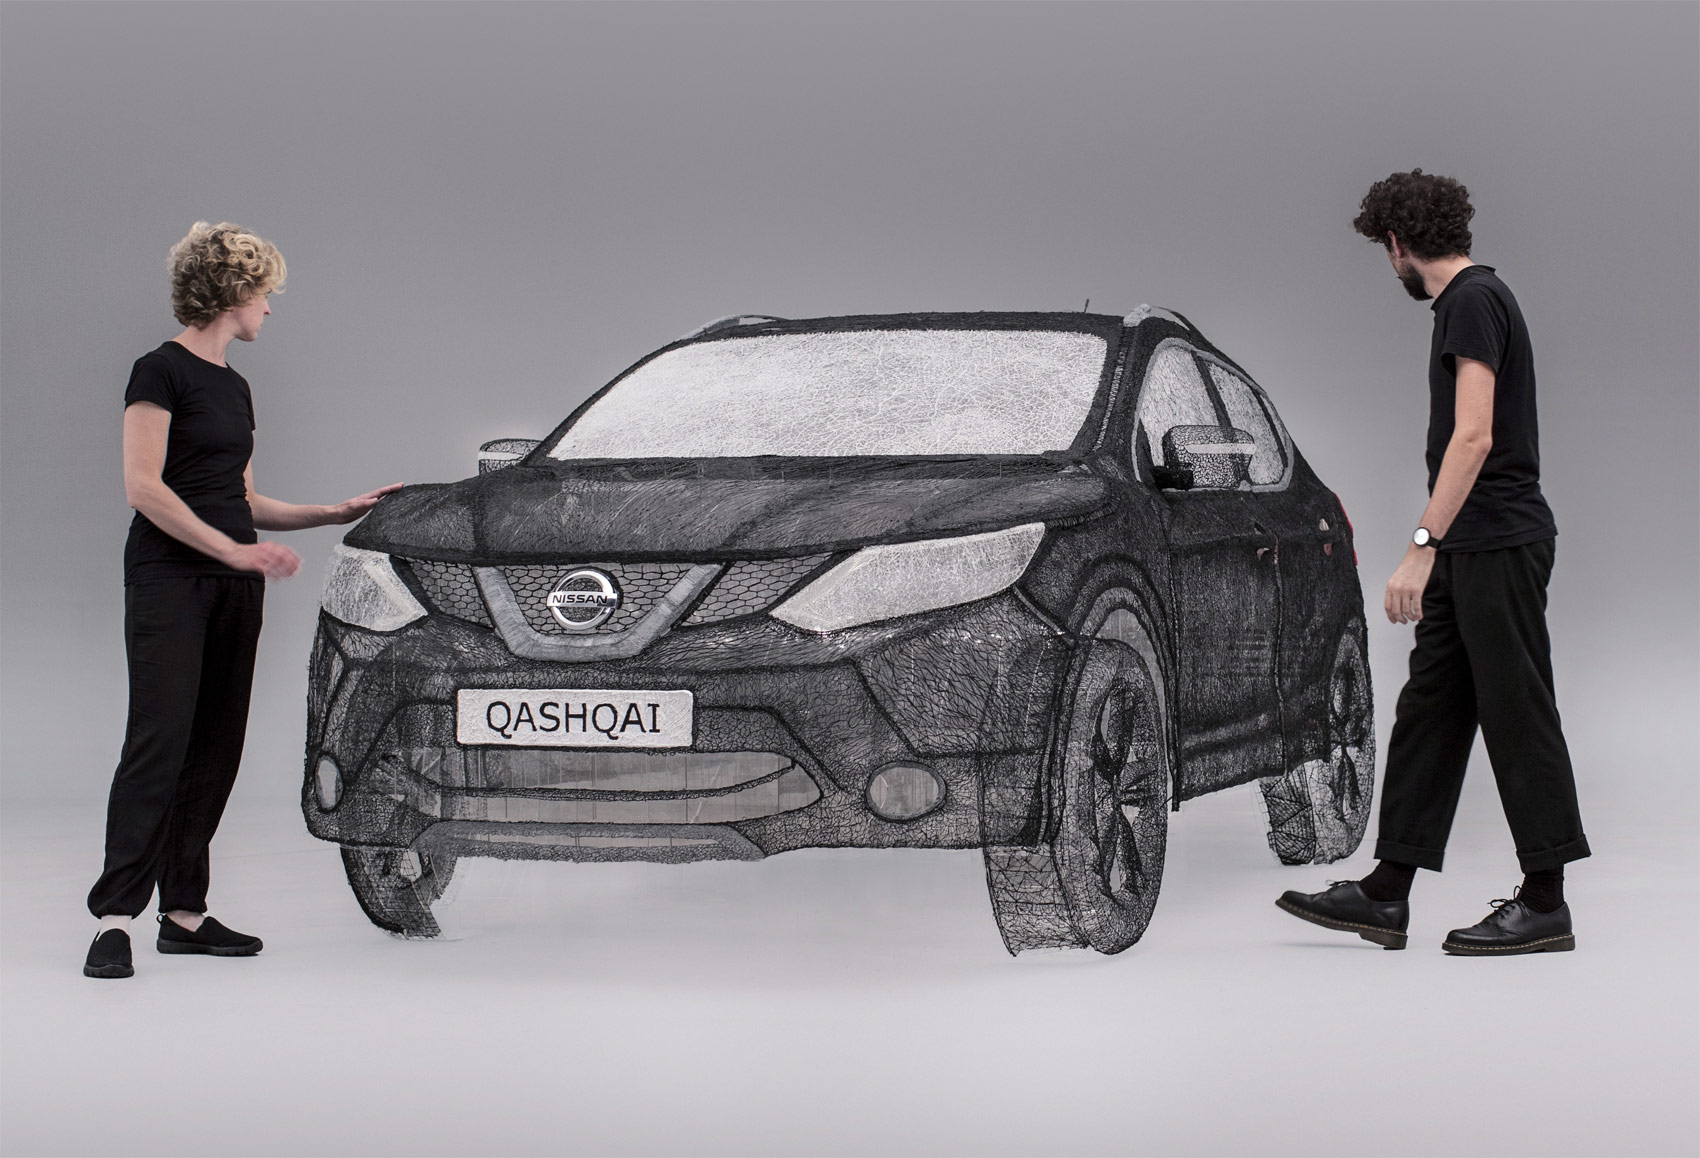 Nissan Draws Full-Sized Qashqai Black Edition Using 3Doodler 3D Pen 8